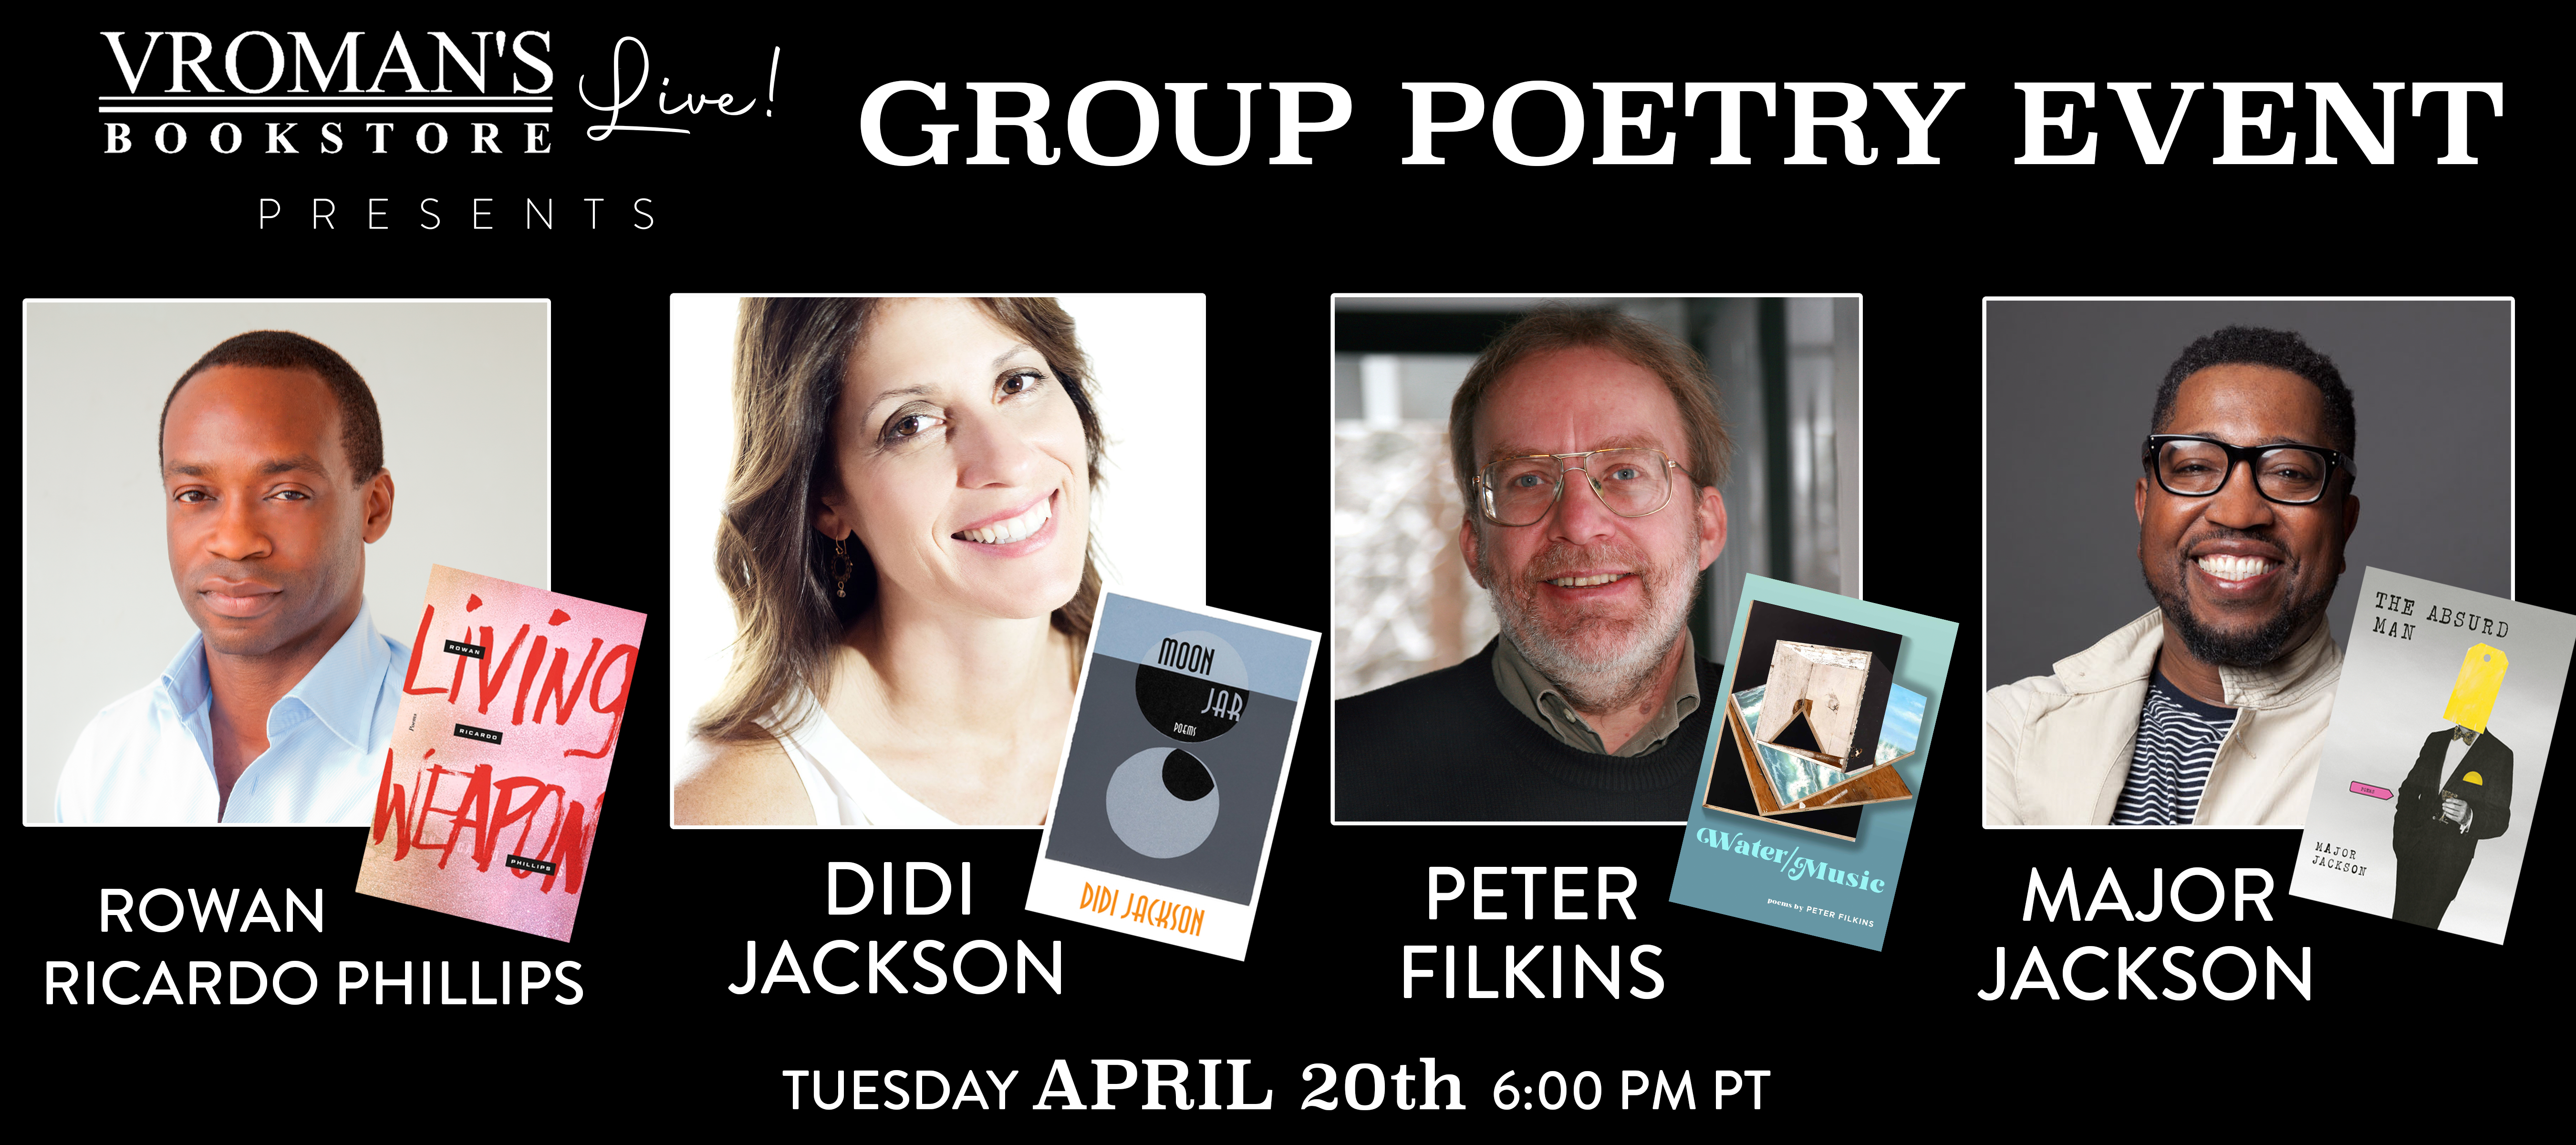 Group Poetry Event on Tuesday April 20th at 6pm